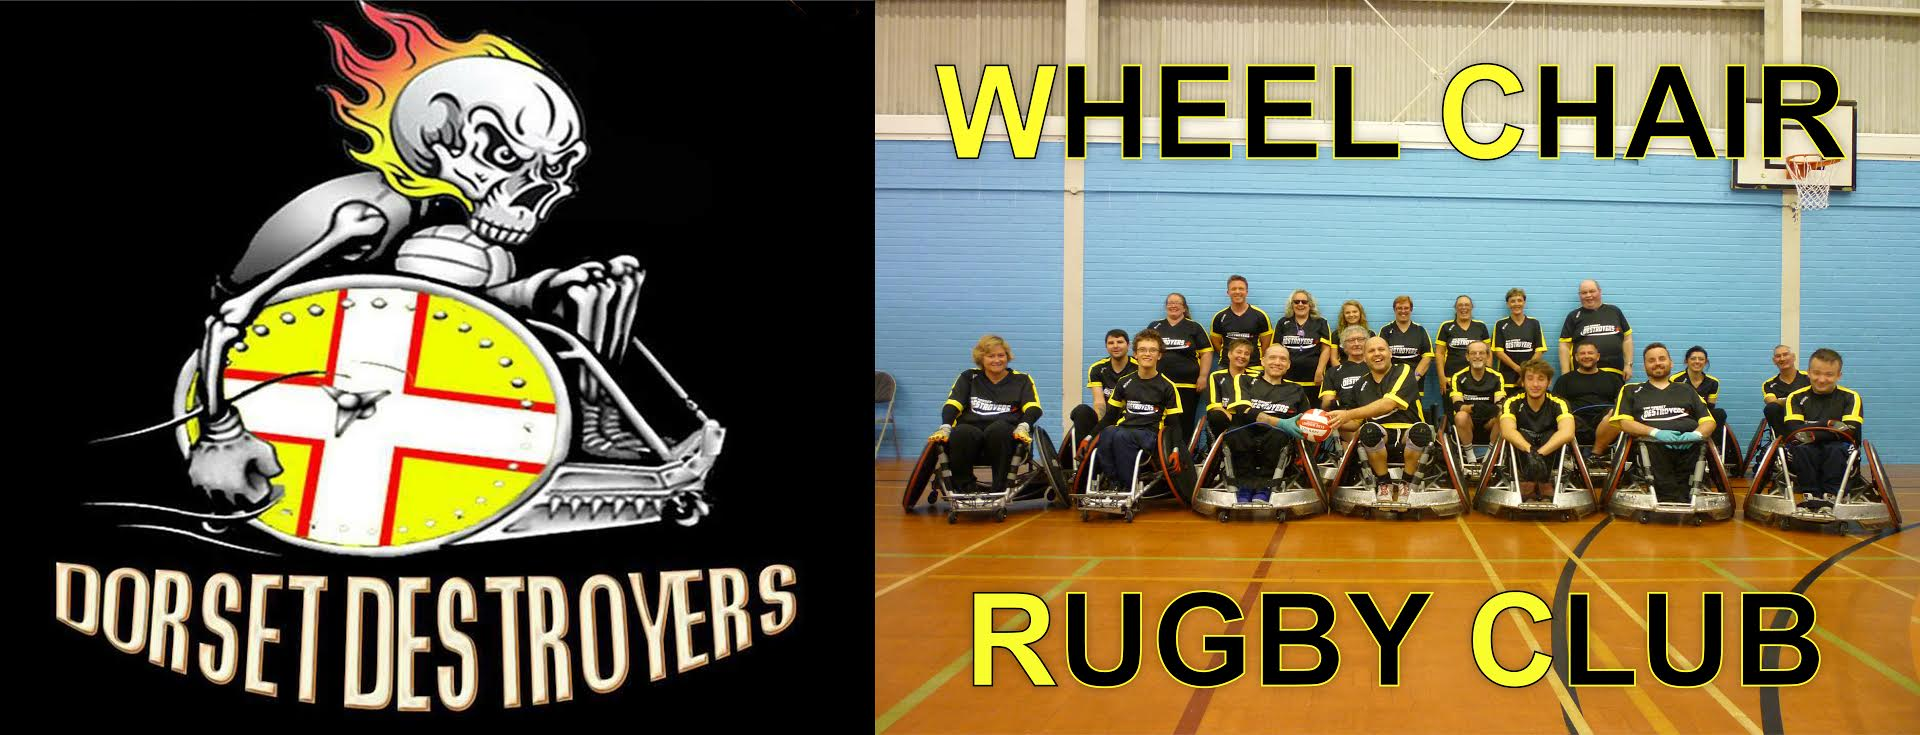 Wheelchair Rugby with The Dorset Destroyers